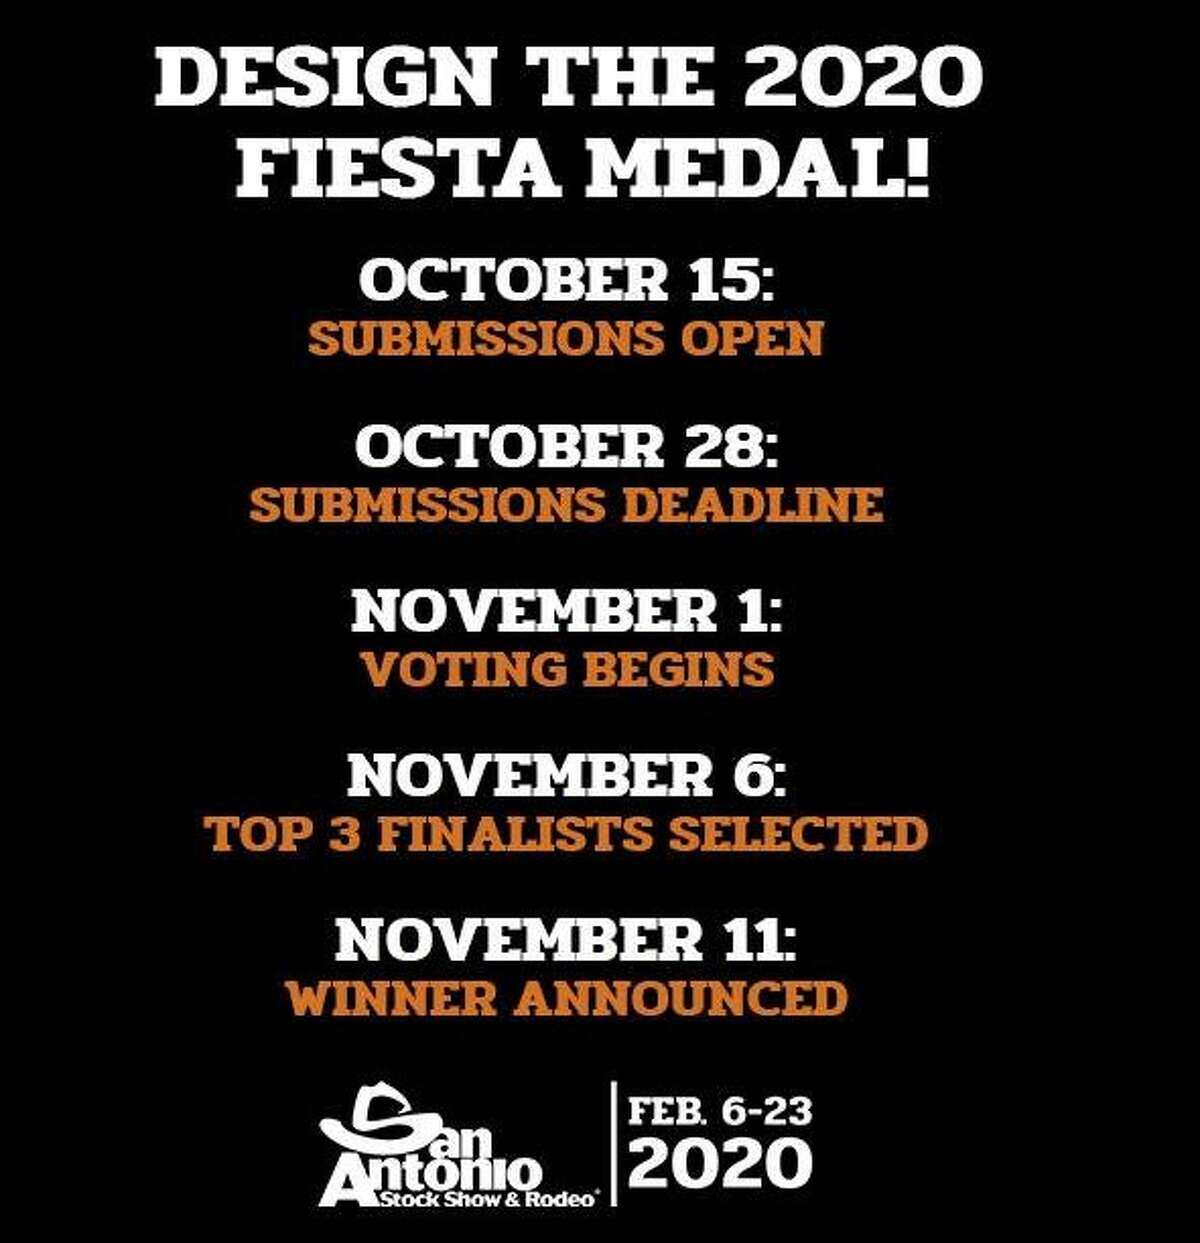 The San Antonio Stock Show & Rodeo is asking the public to help design its 2020 Fiesta medal.